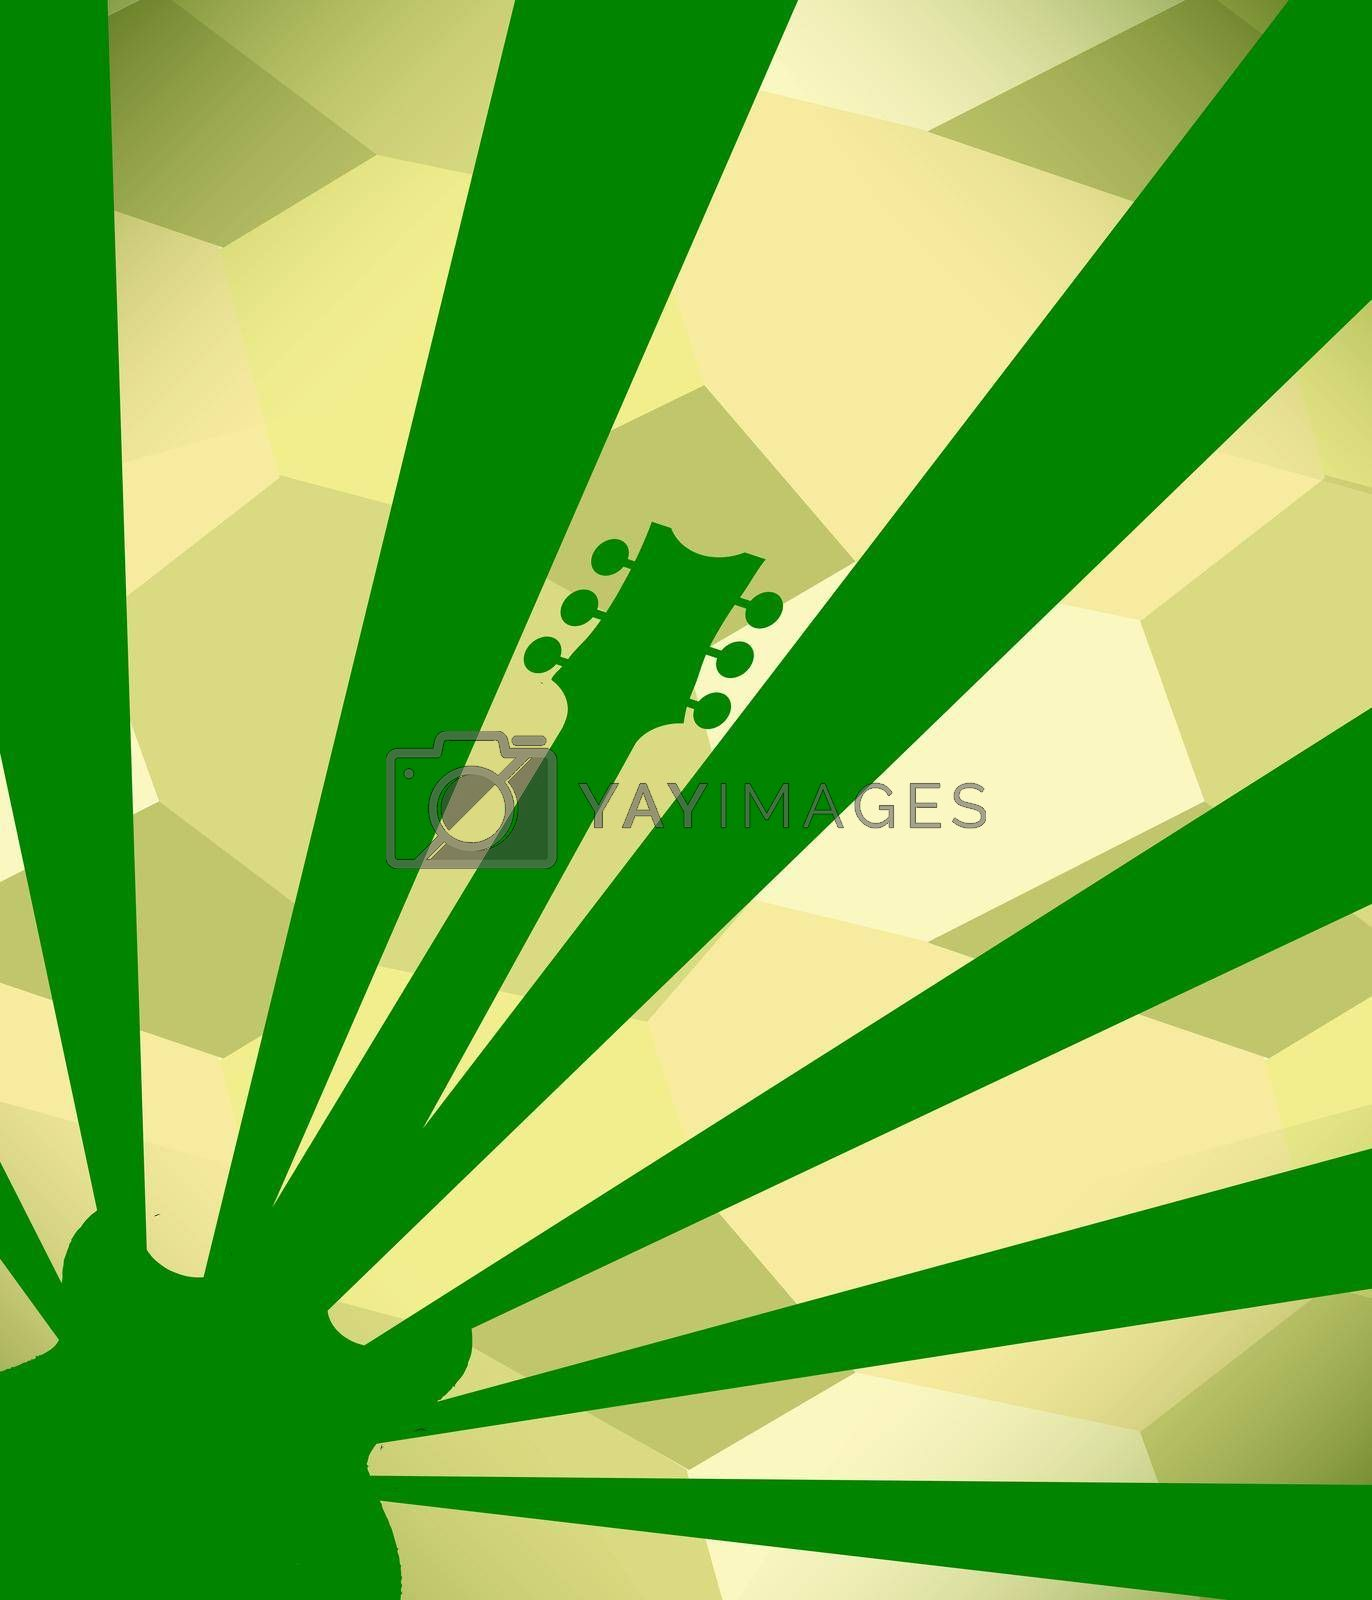 Green rock guitar poster background with heavy grunge